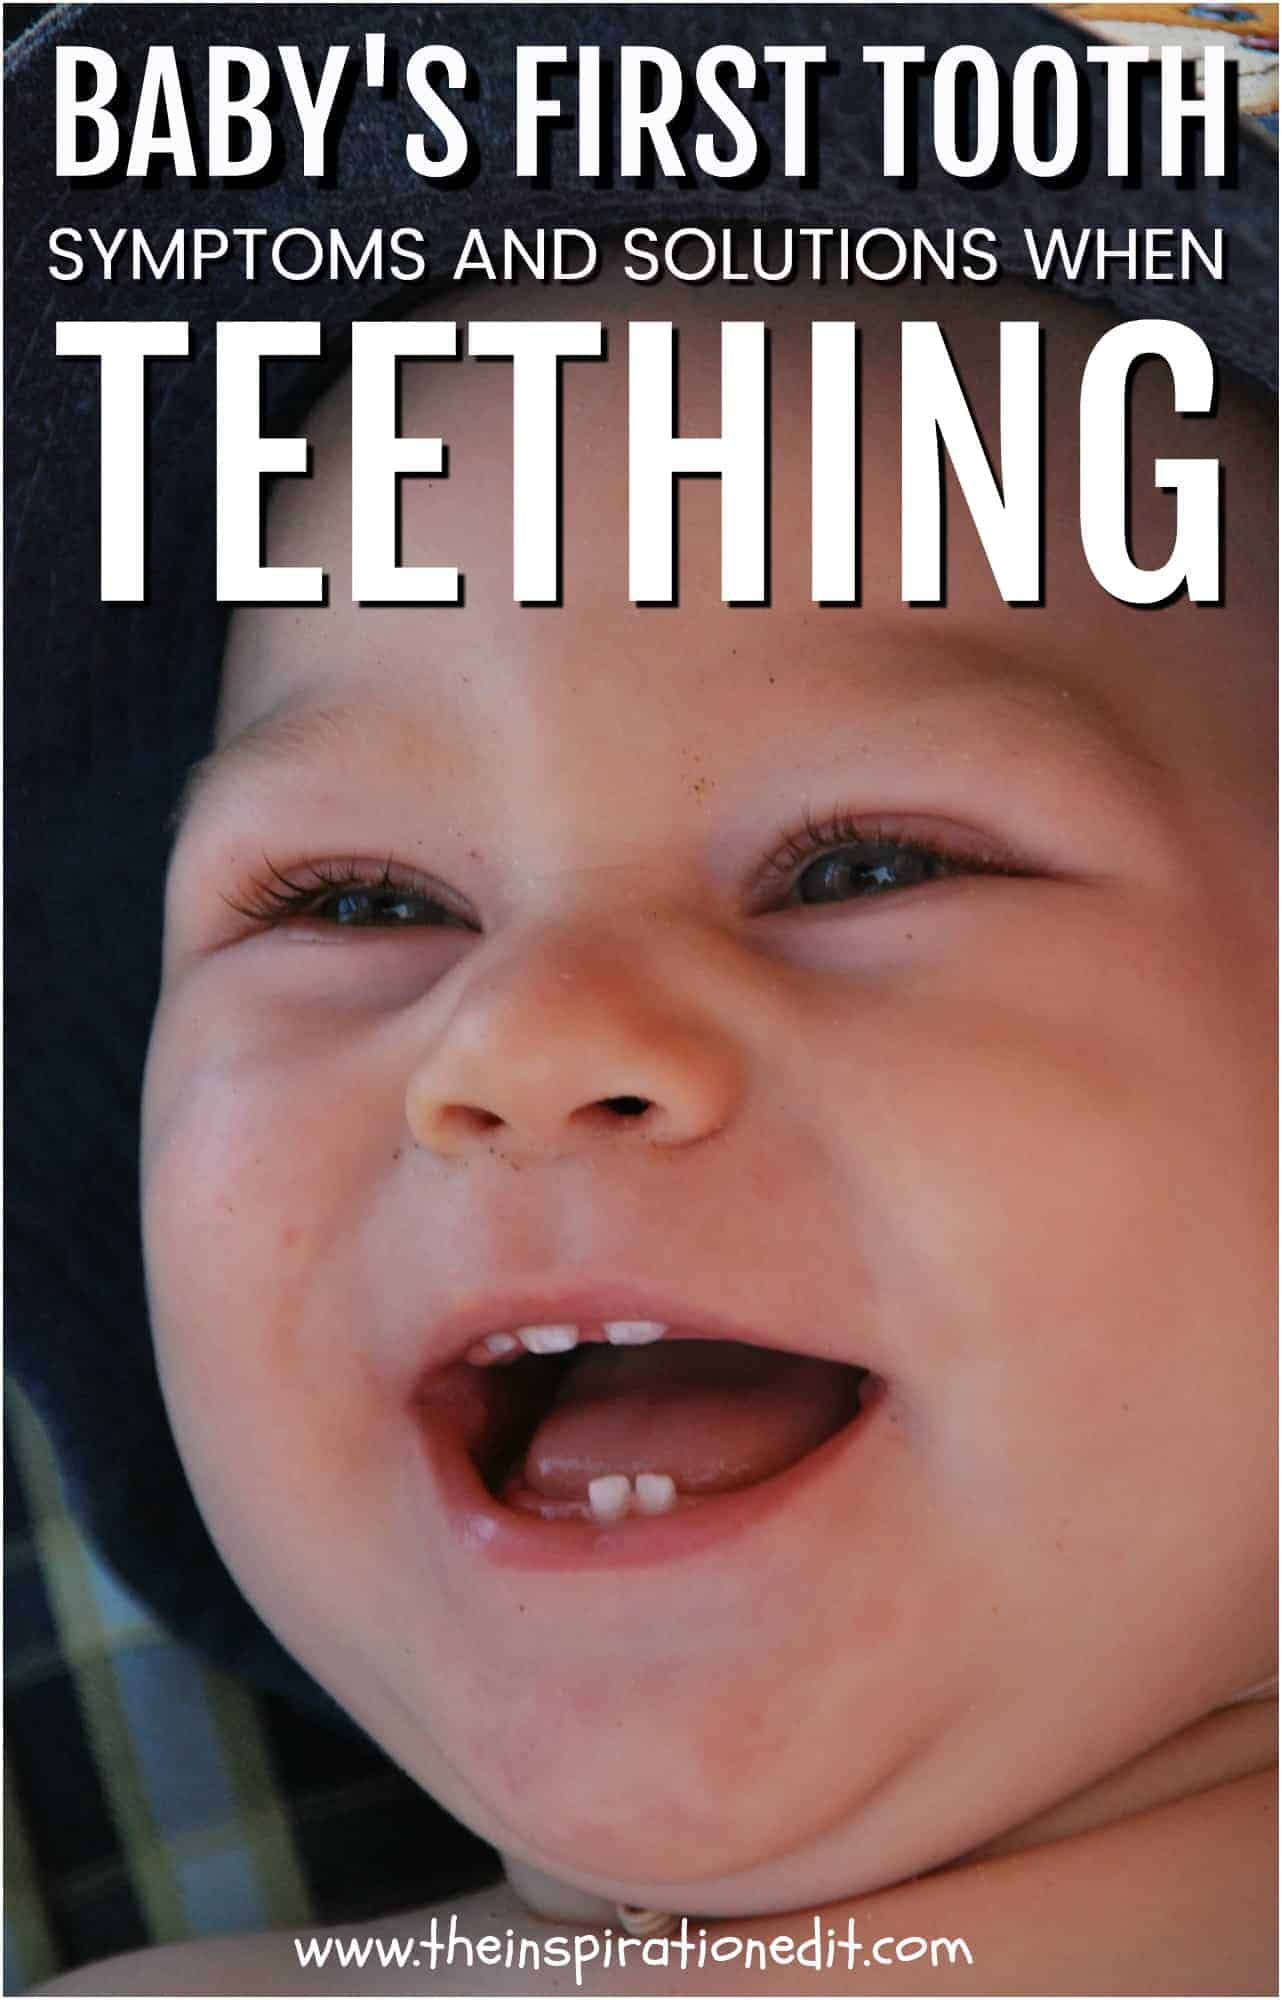 symptoms and solutions when teething, baby teething baby's first tooth